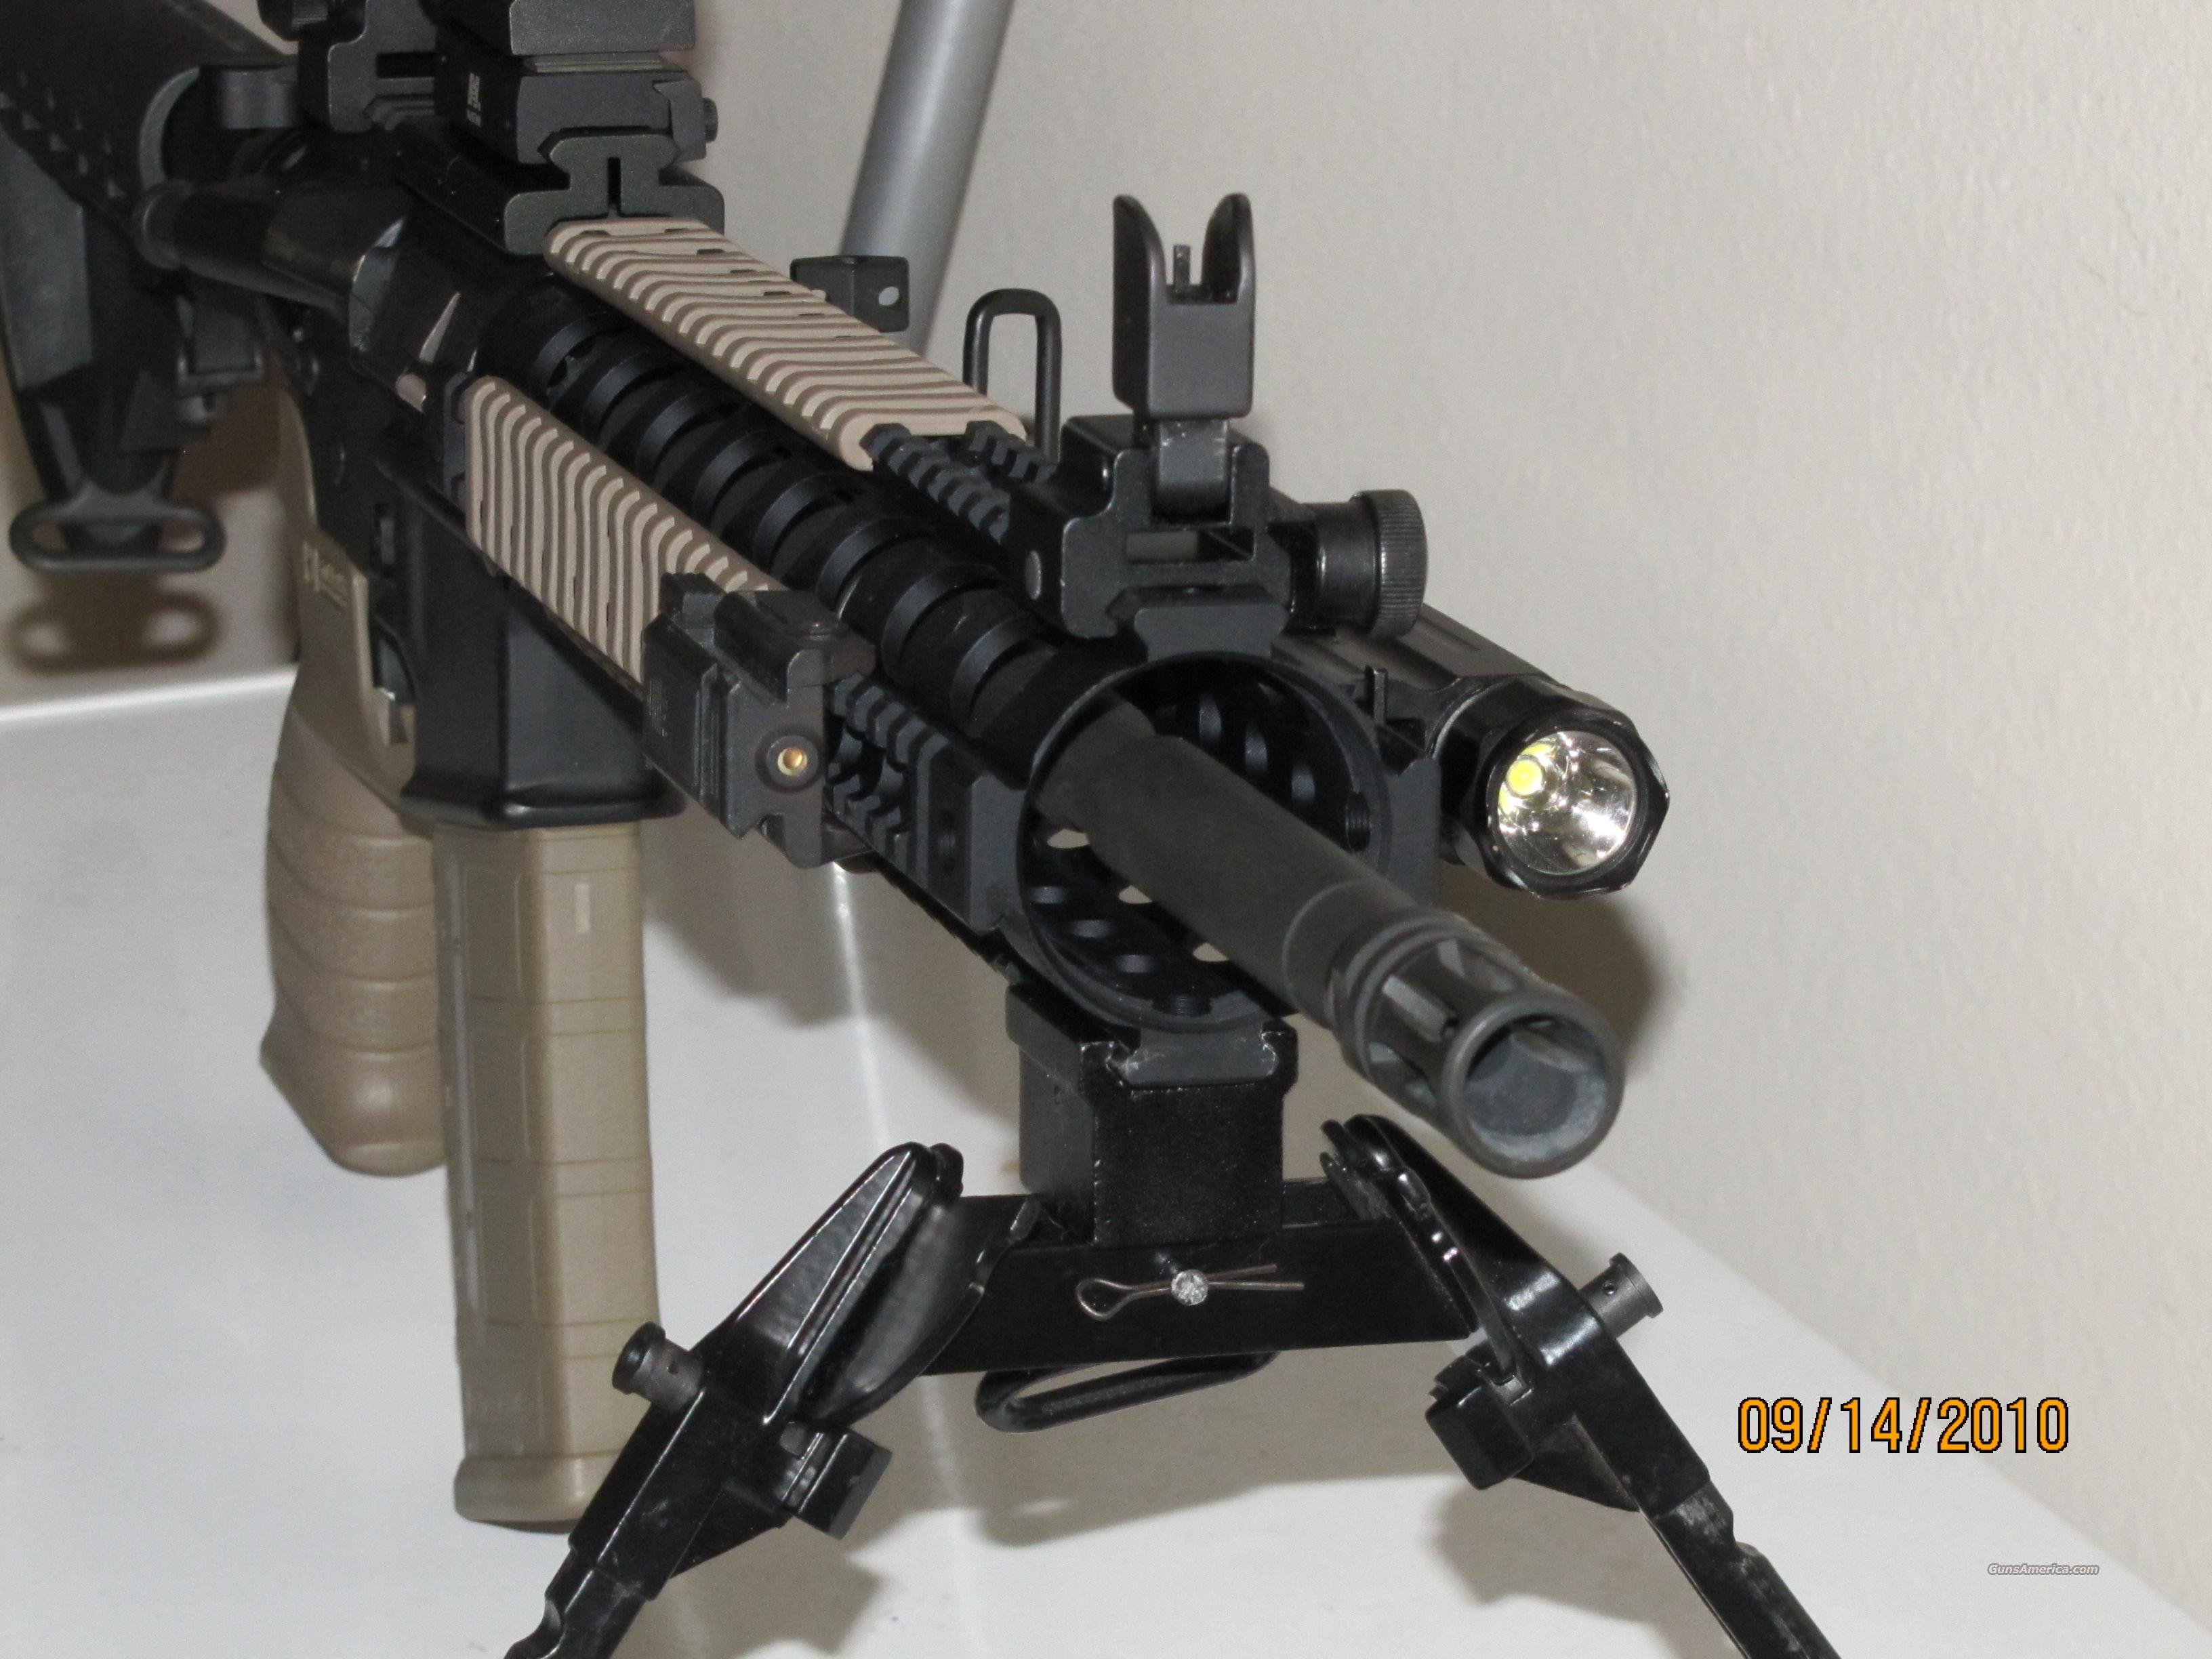 CUSTOM DPMS AR15 FREE SHIPPING  Guns > Rifles > AR-15 Rifles - Small Manufacturers > Complete Rifle